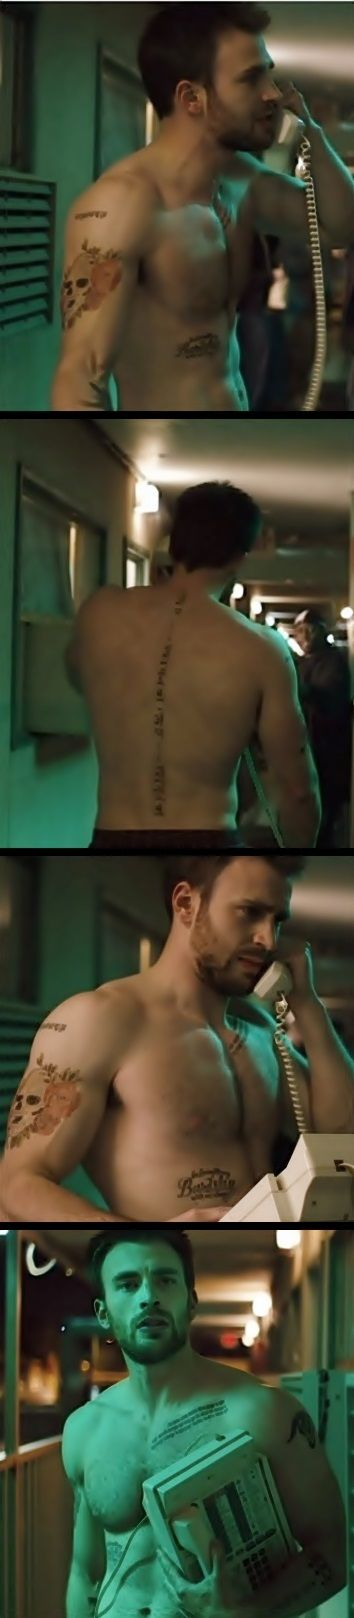 Chris Evans. Does anyone know what this is from?